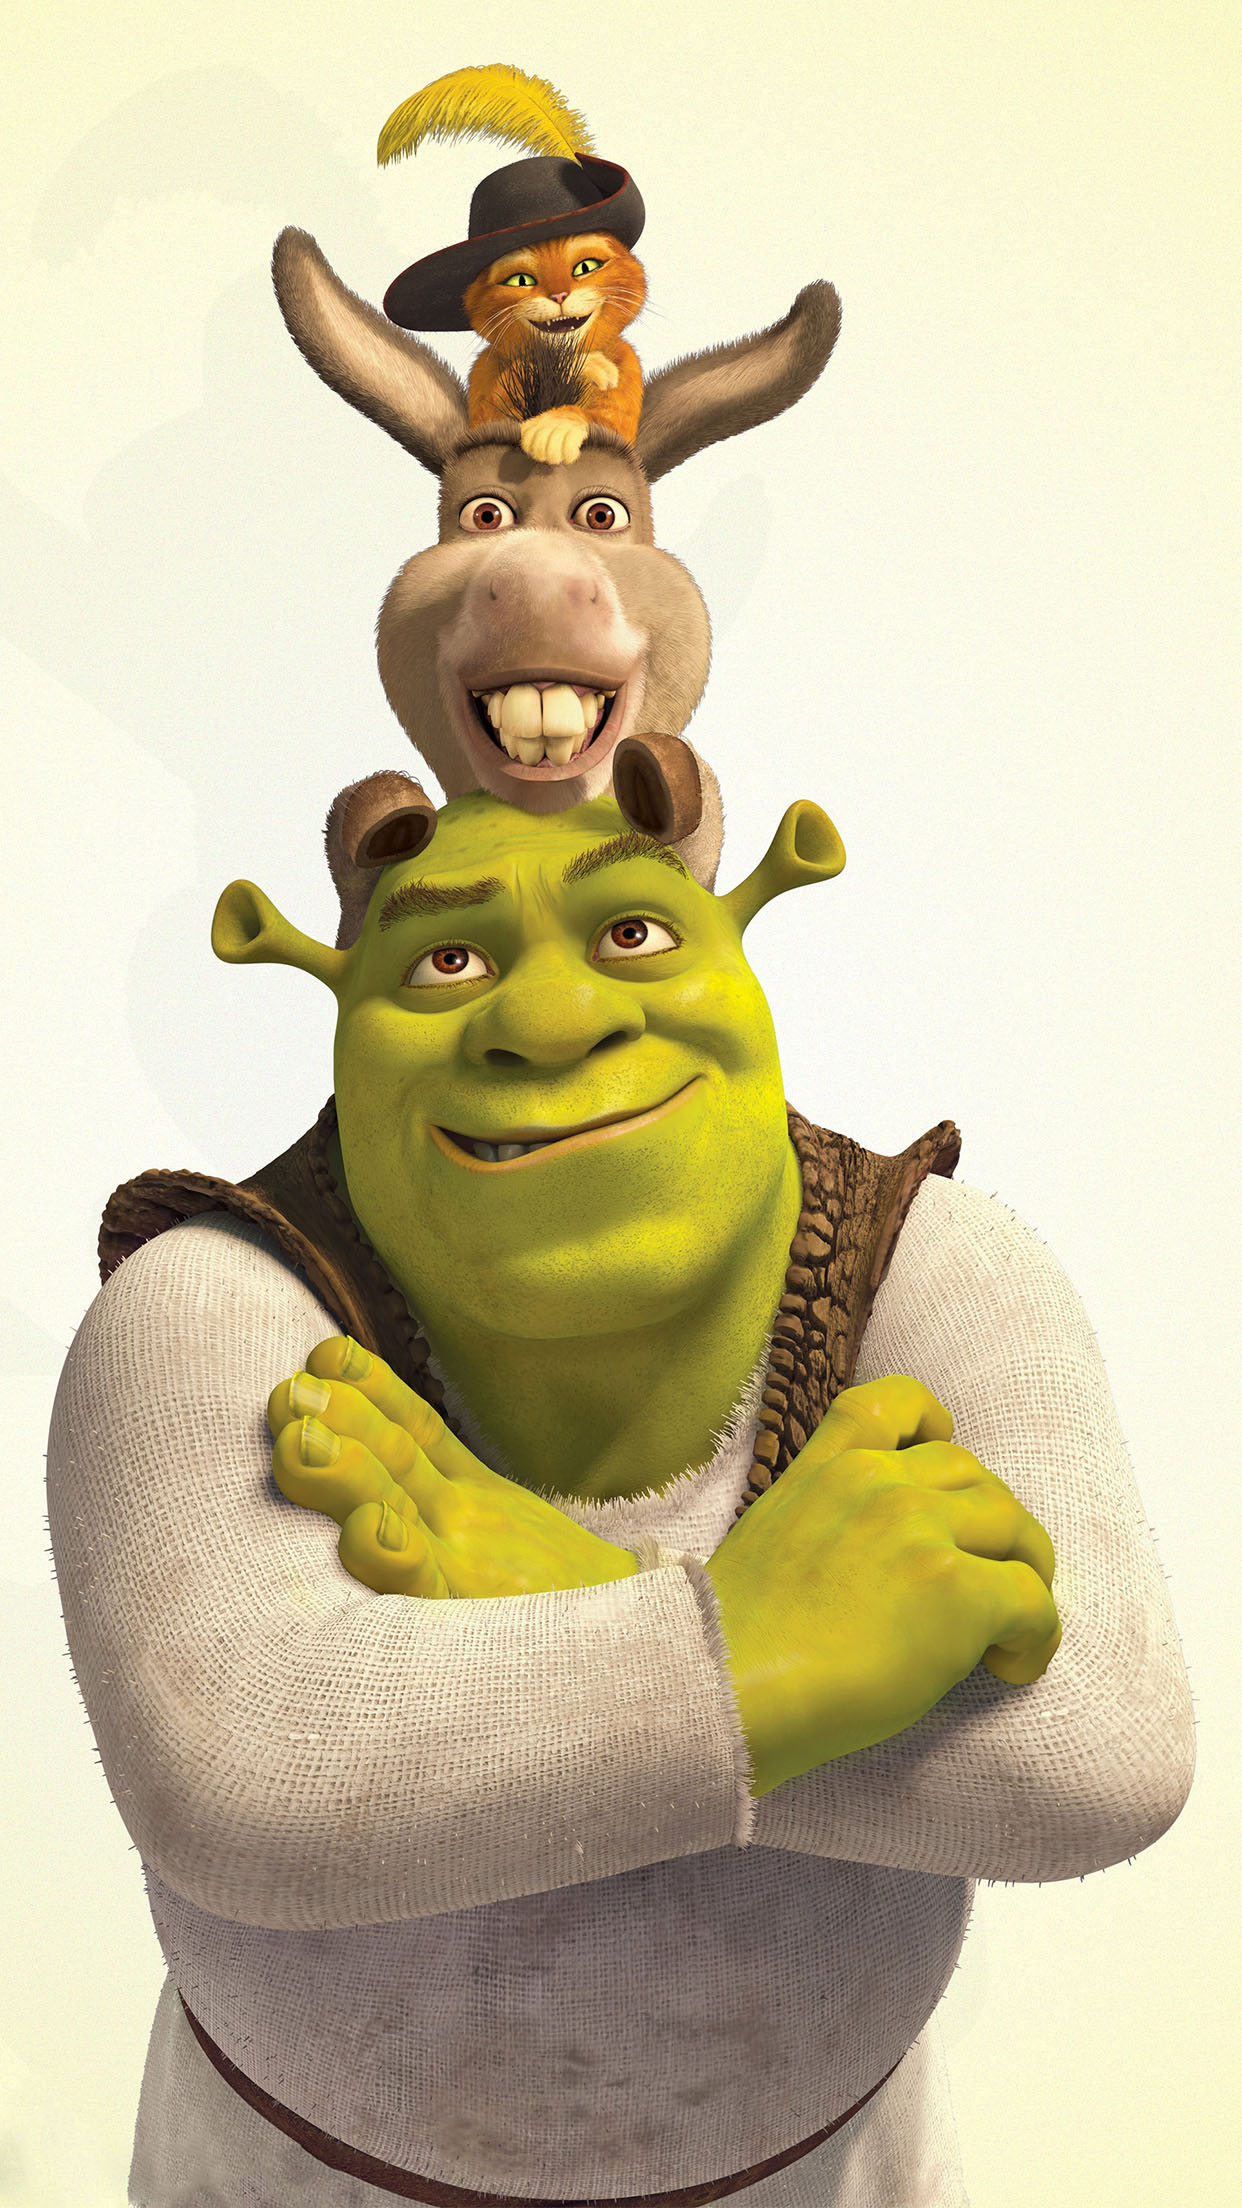 Shrek Shrek donkey and puss in boots 3Wallpapers iPhone Parallax 1 Shrek donkey and puss in boots